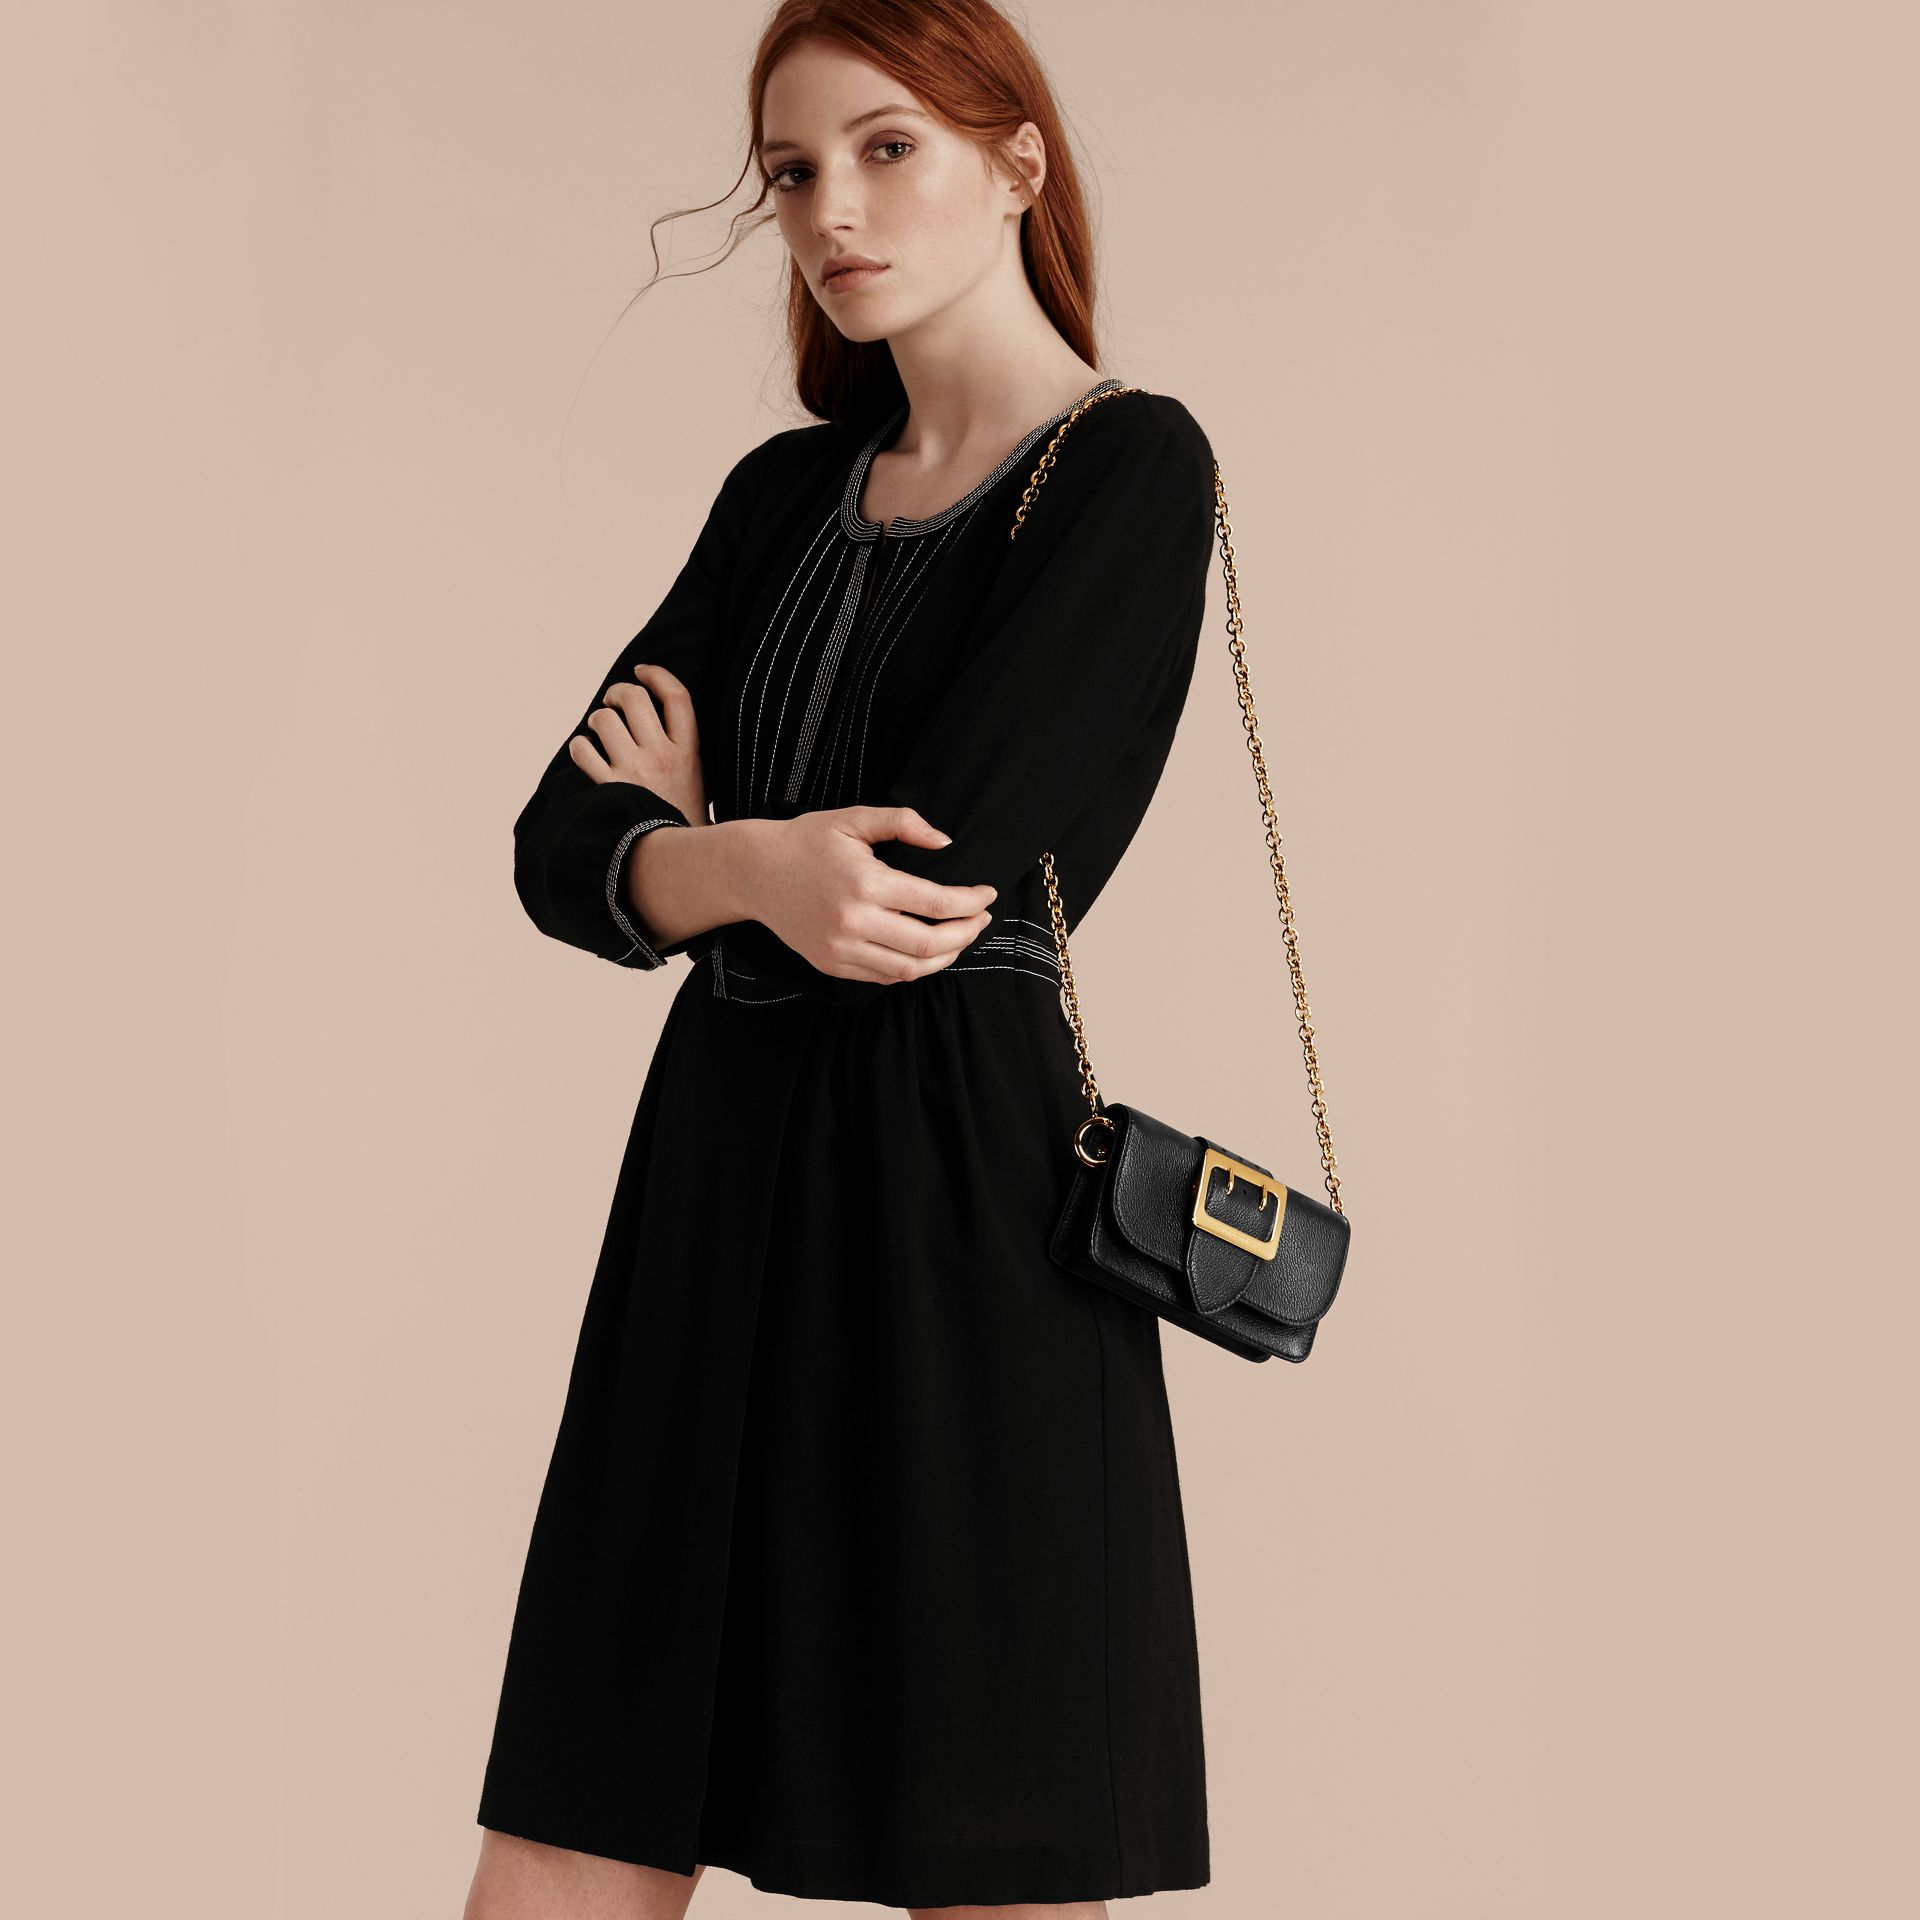 Black The Mini Buckle Bag in Grainy Leather Black - gallery image 3